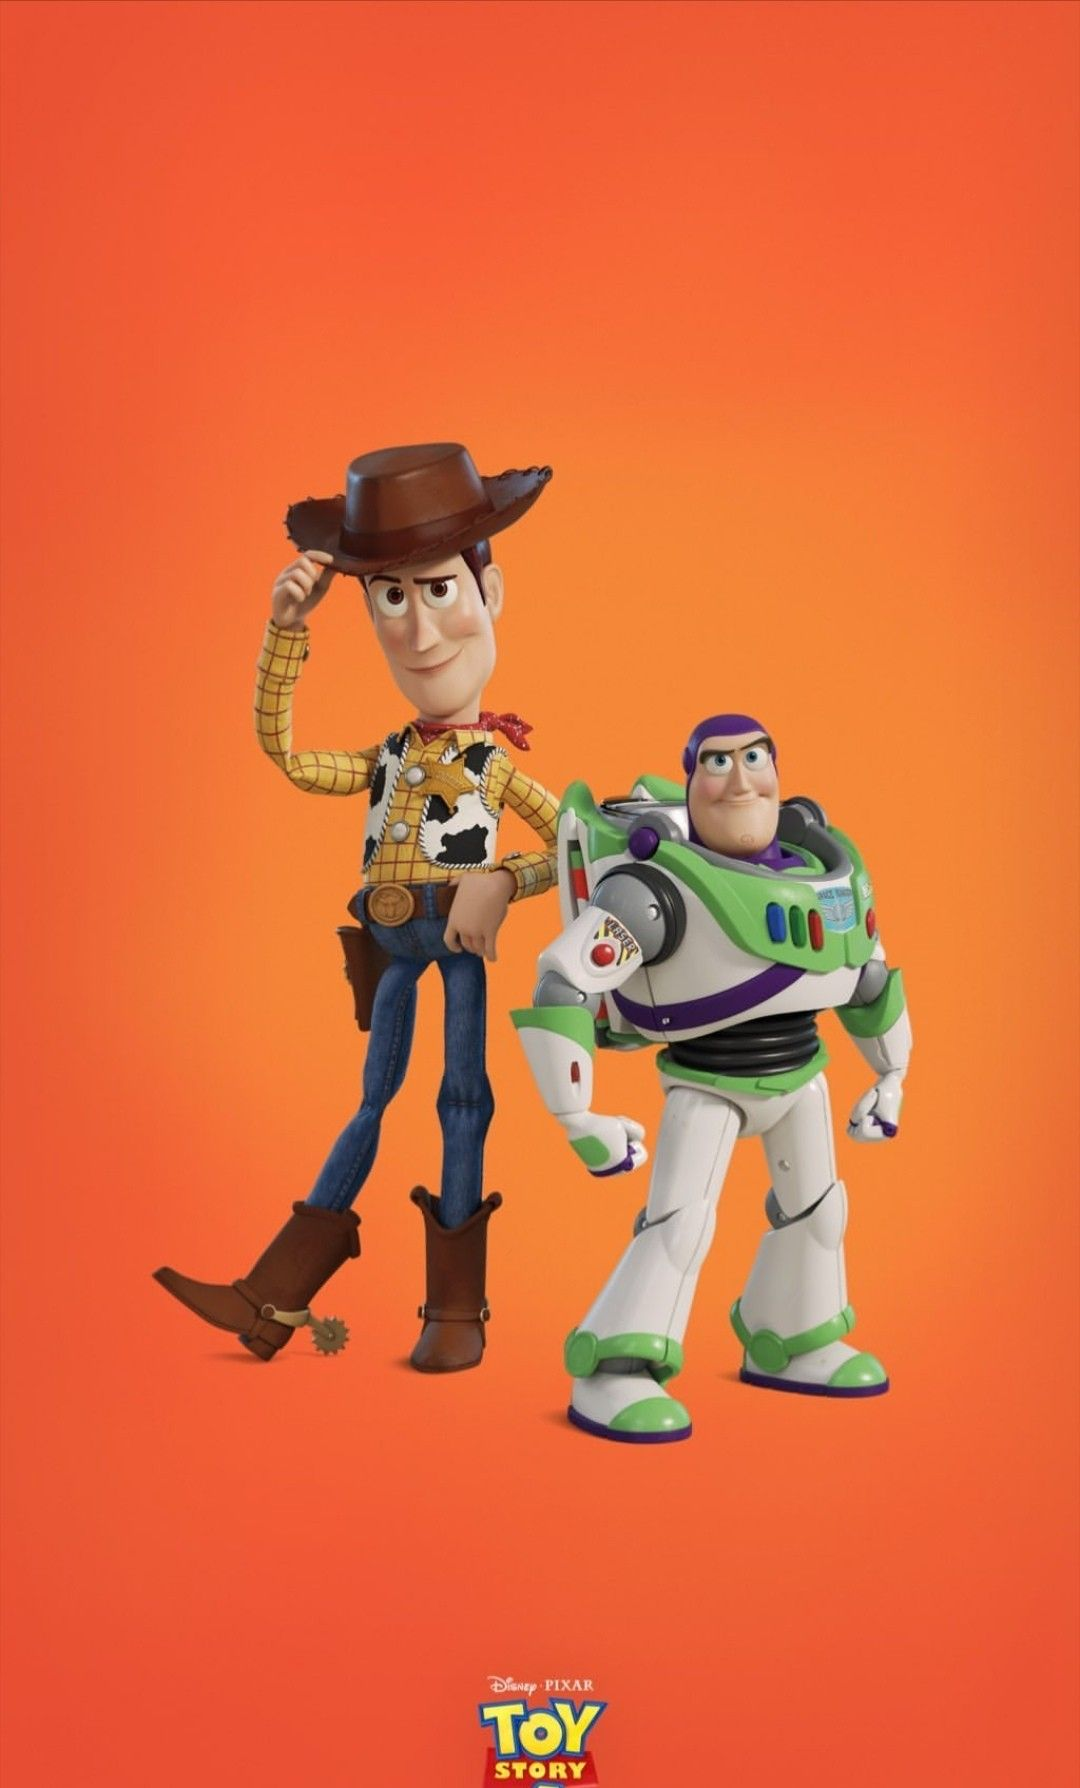 Woody And Buzz Toy Story 4 C 2019 Pixar Animation Studios Walt Disney Studios Woody Toy Story Cute Cartoon Wallpapers Toy Story Movie